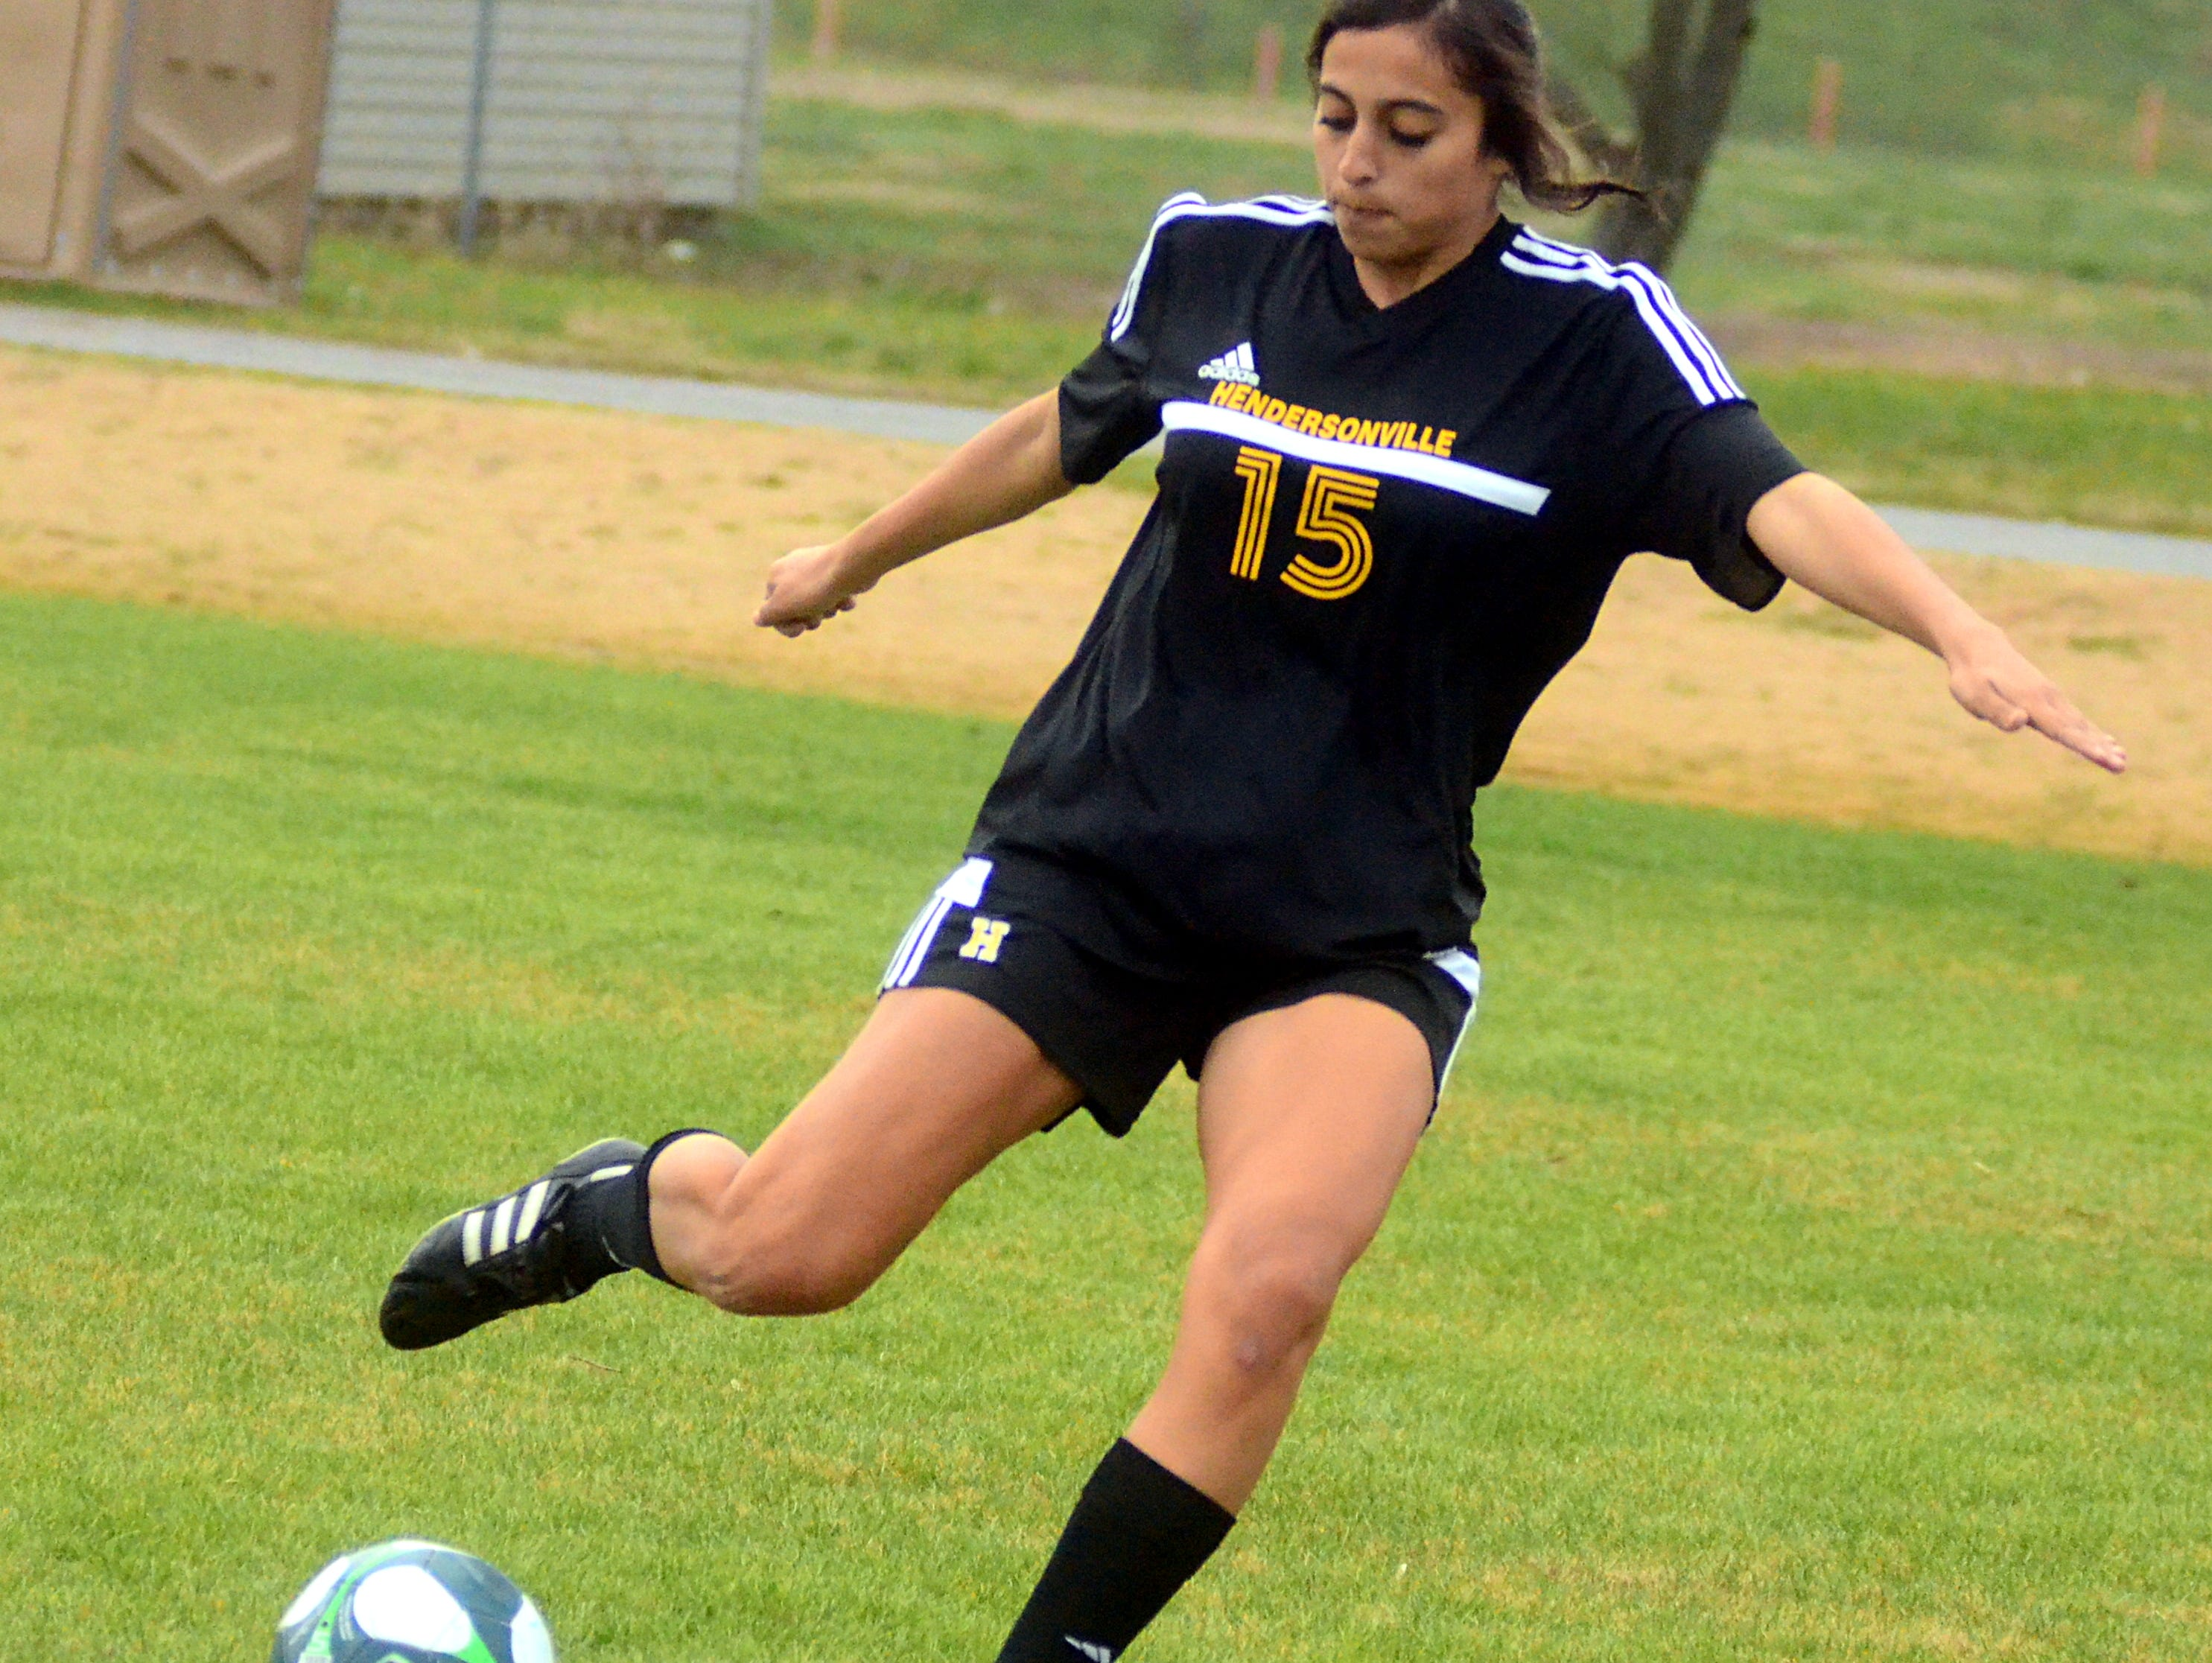 Reigning All-County Defensive Player of the Year Claire Almaraz returns for her senior season with Hendersonville.